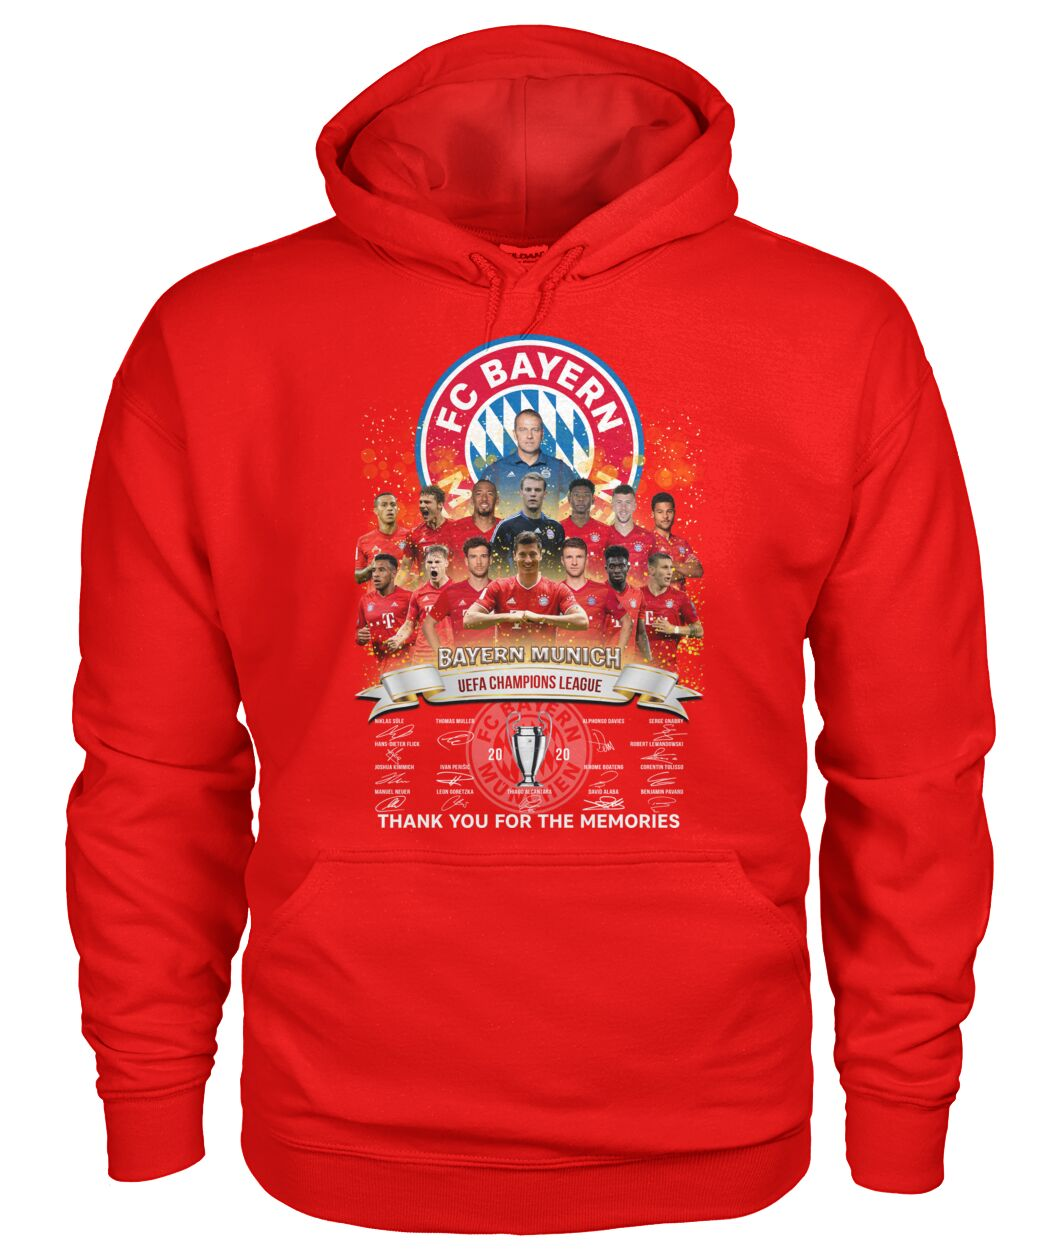 fc bayern munich 2020 uefa champions league thank you for the memories signatures hoodie